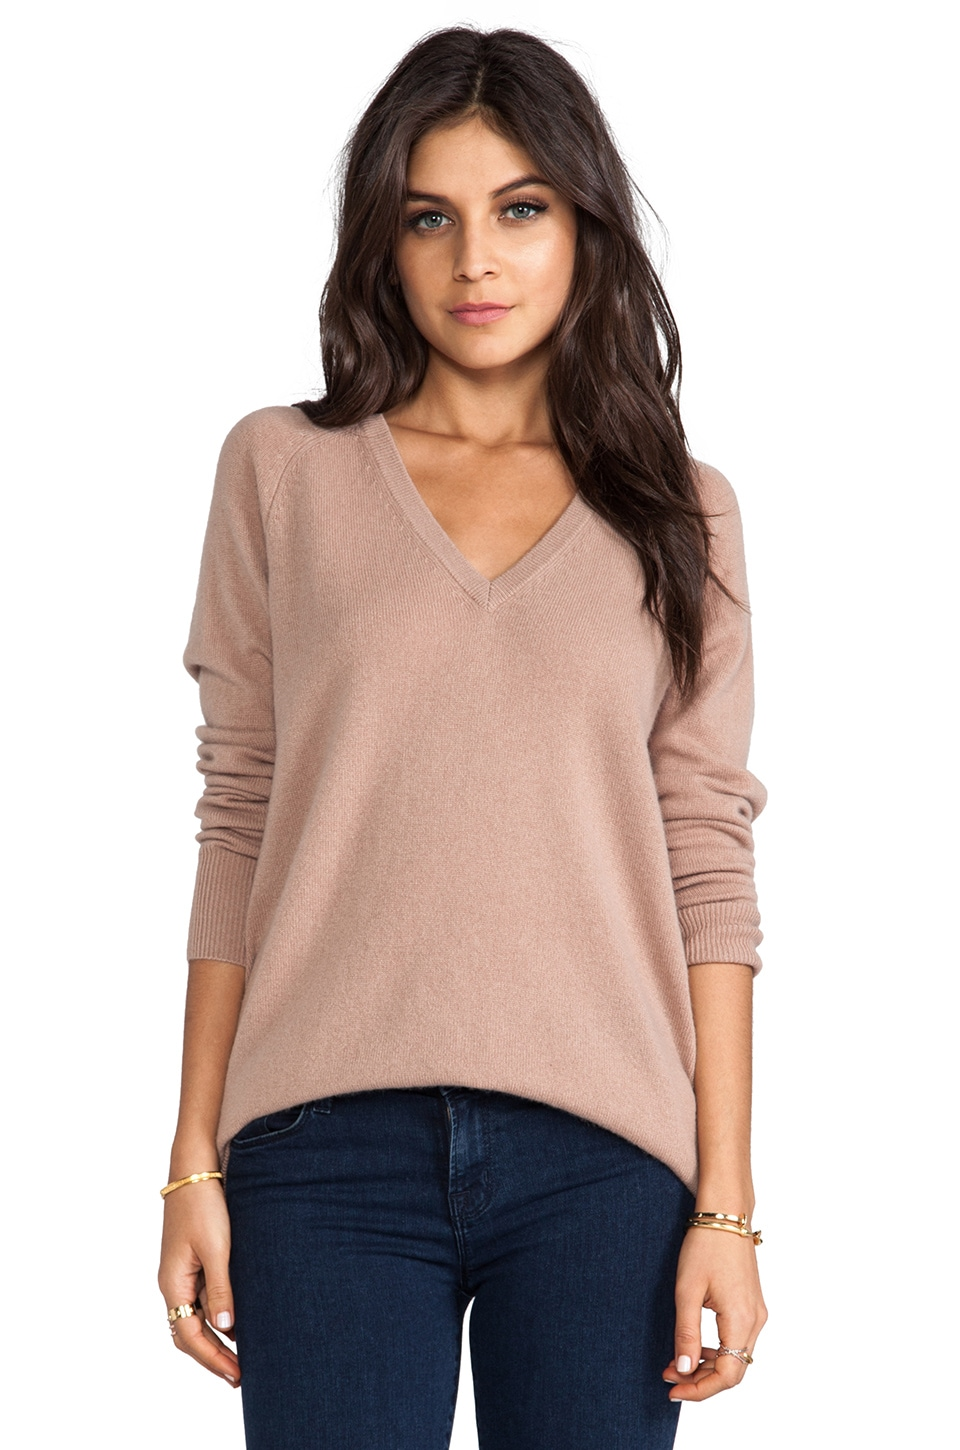 Equipment Asher V Neck Sweater in Camel